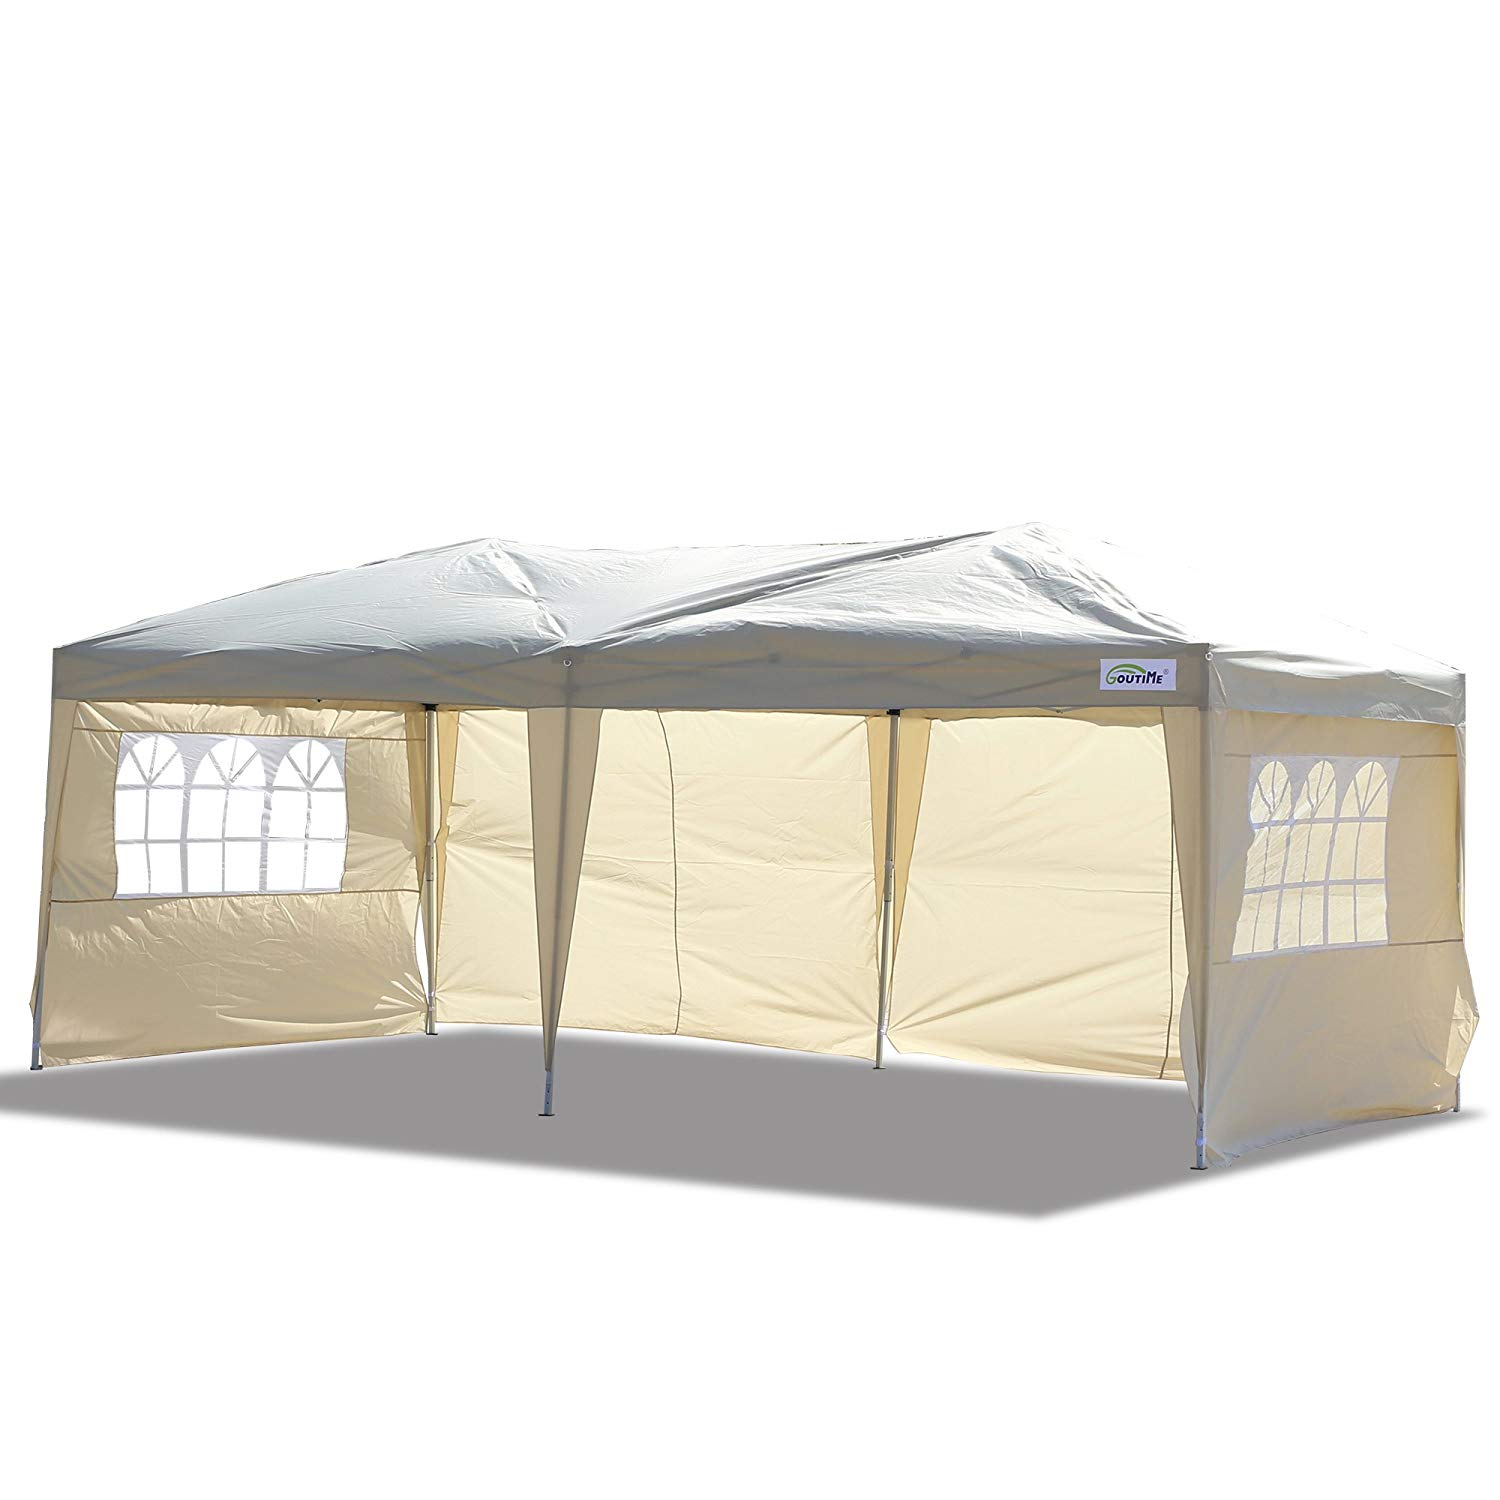 Goutime 10 by 20 Ft Ez Pop up Canopy Tent